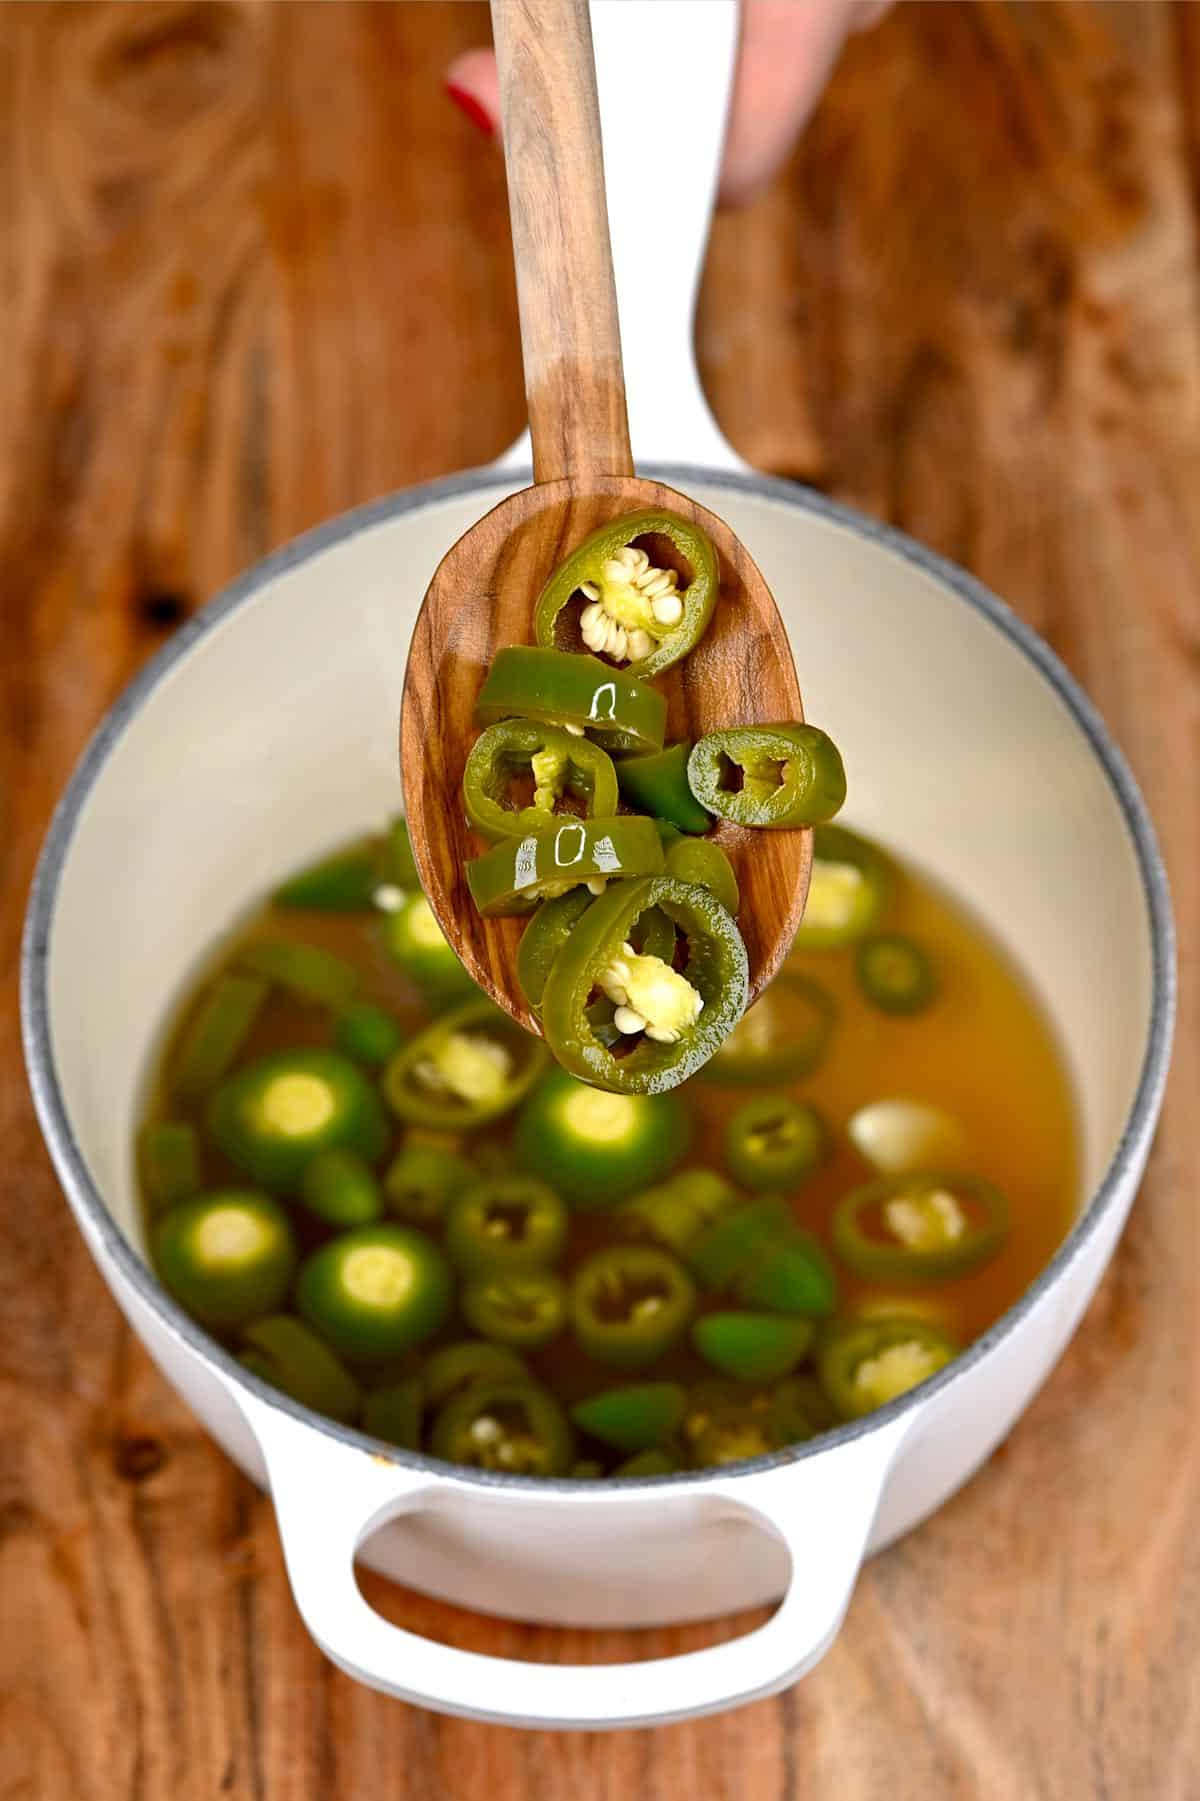 Pickled jalapeños in a wooden spoon